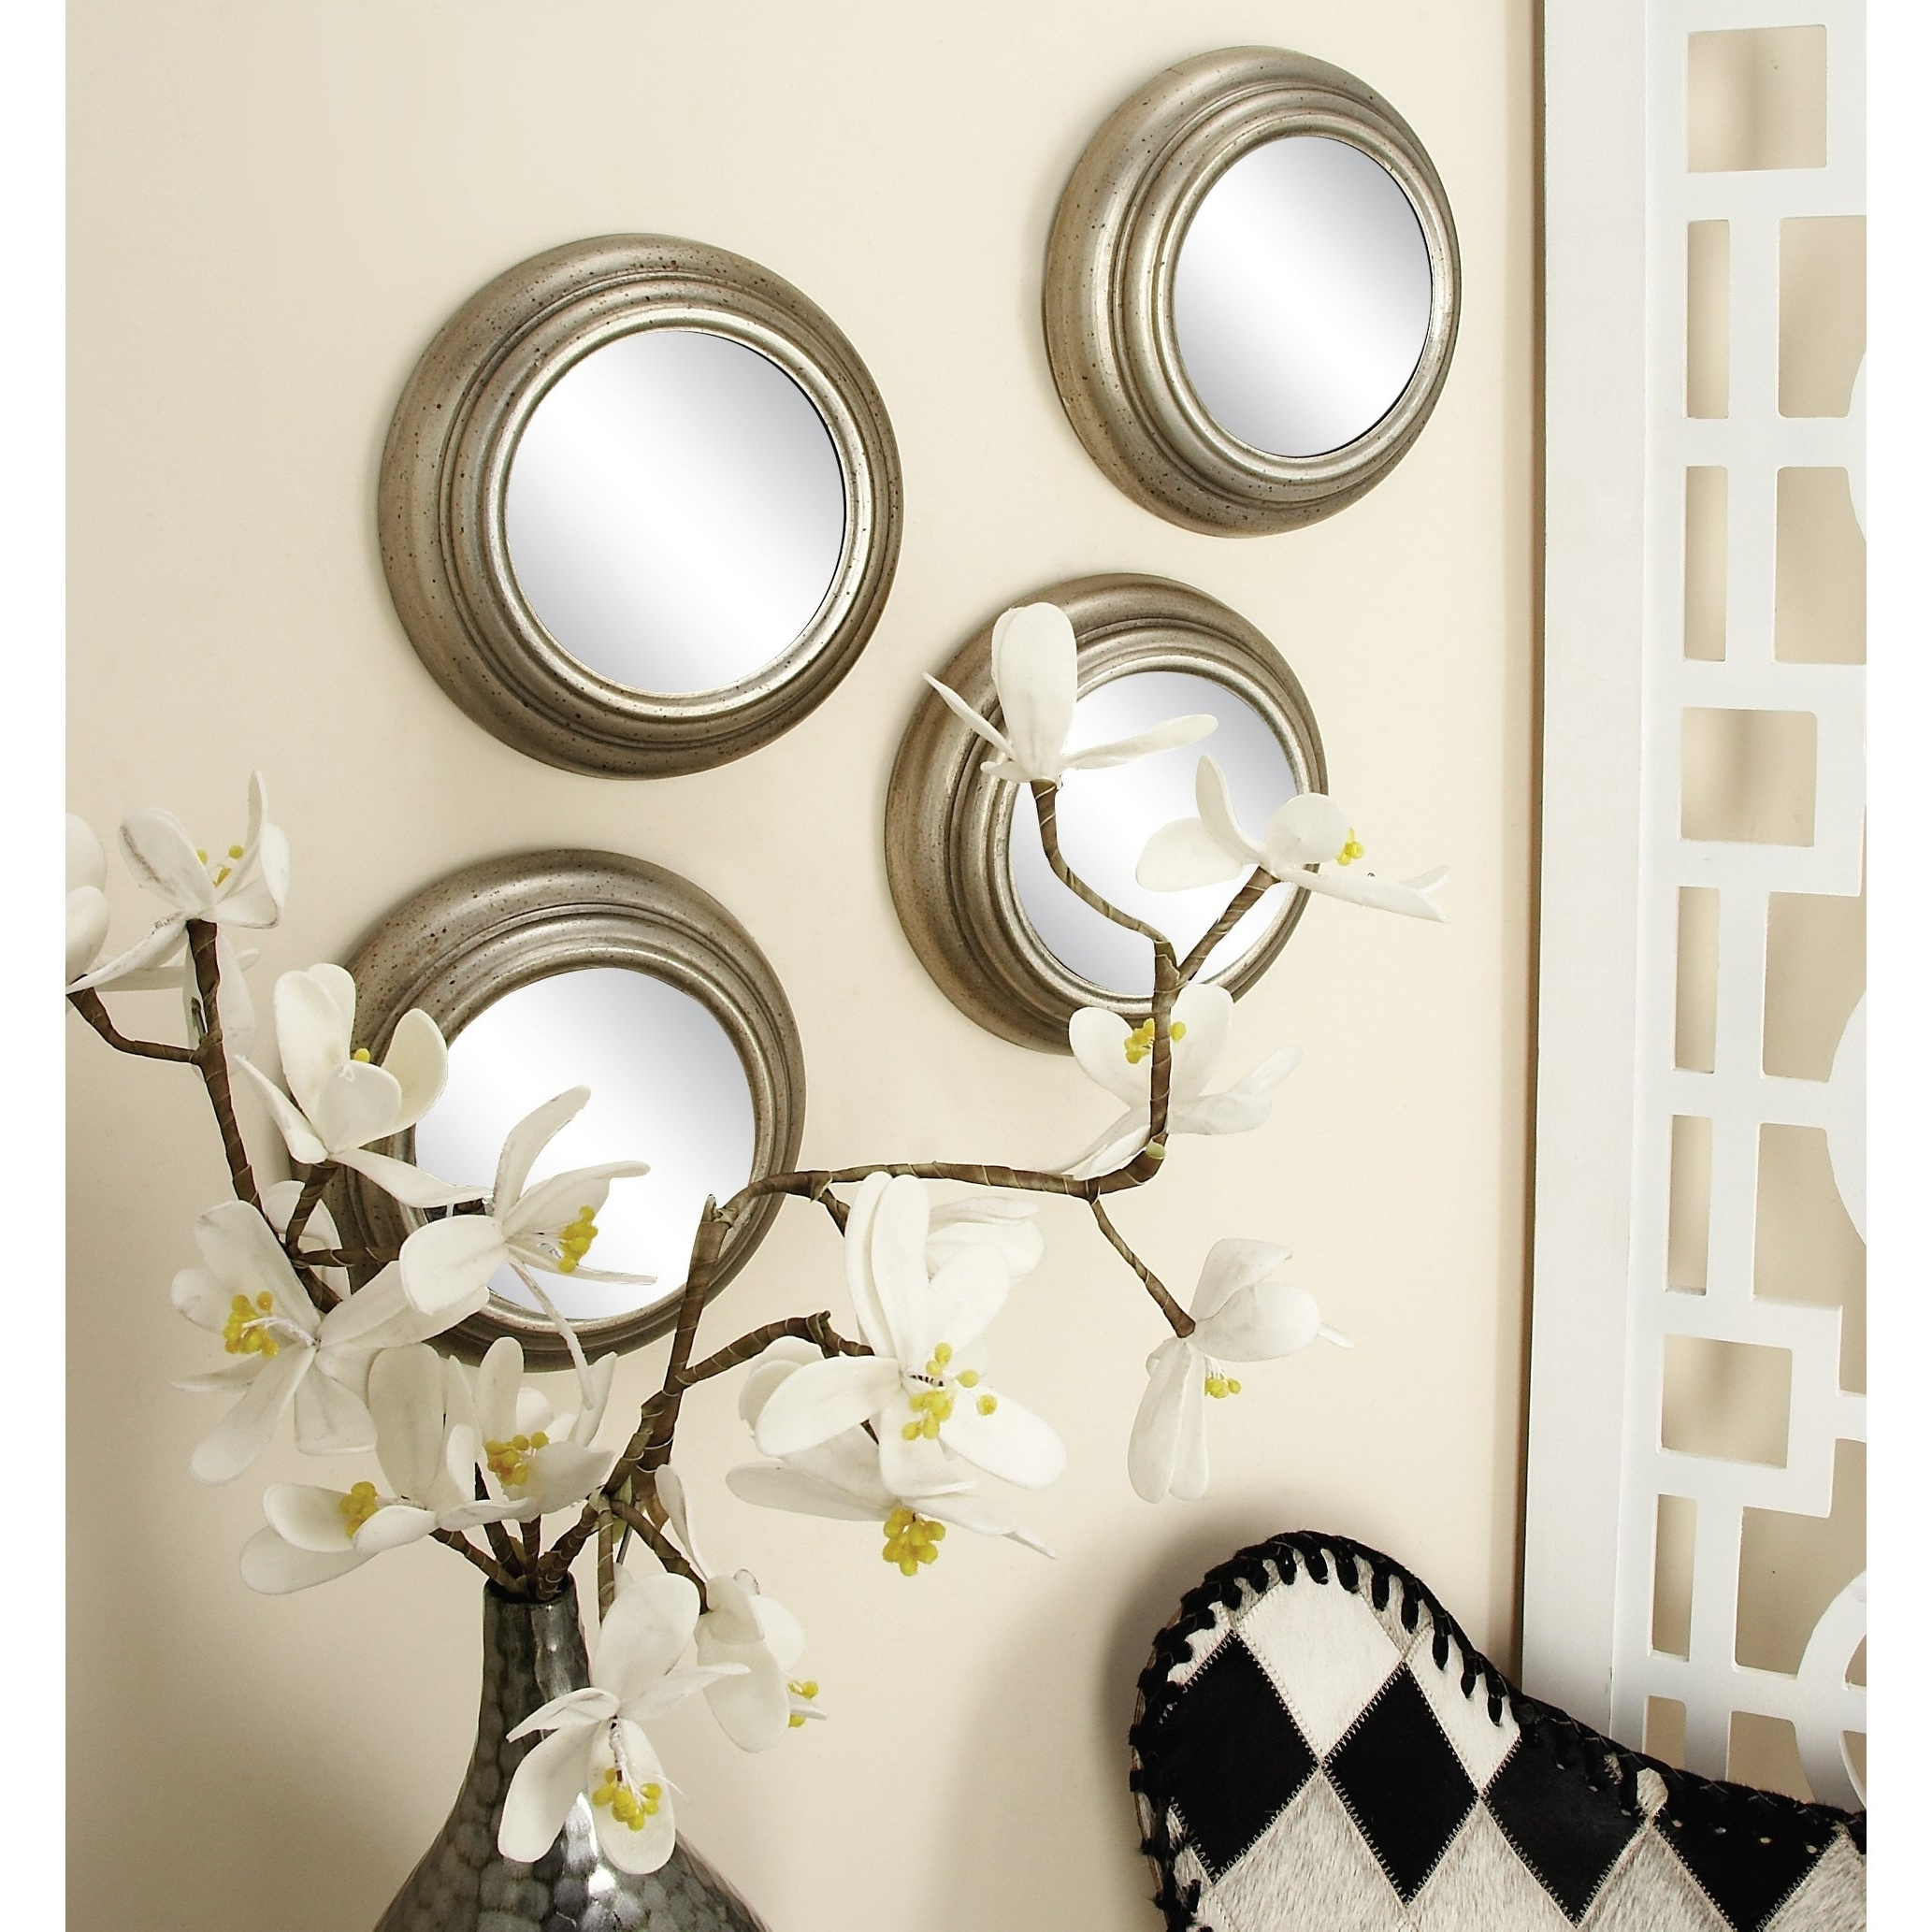 Favorite Set Of 12 Contemporary Round Decorative Wall Mirrorsstudio 350 – Silver For Decorative Cheap Wall Mirrors (View 6 of 20)